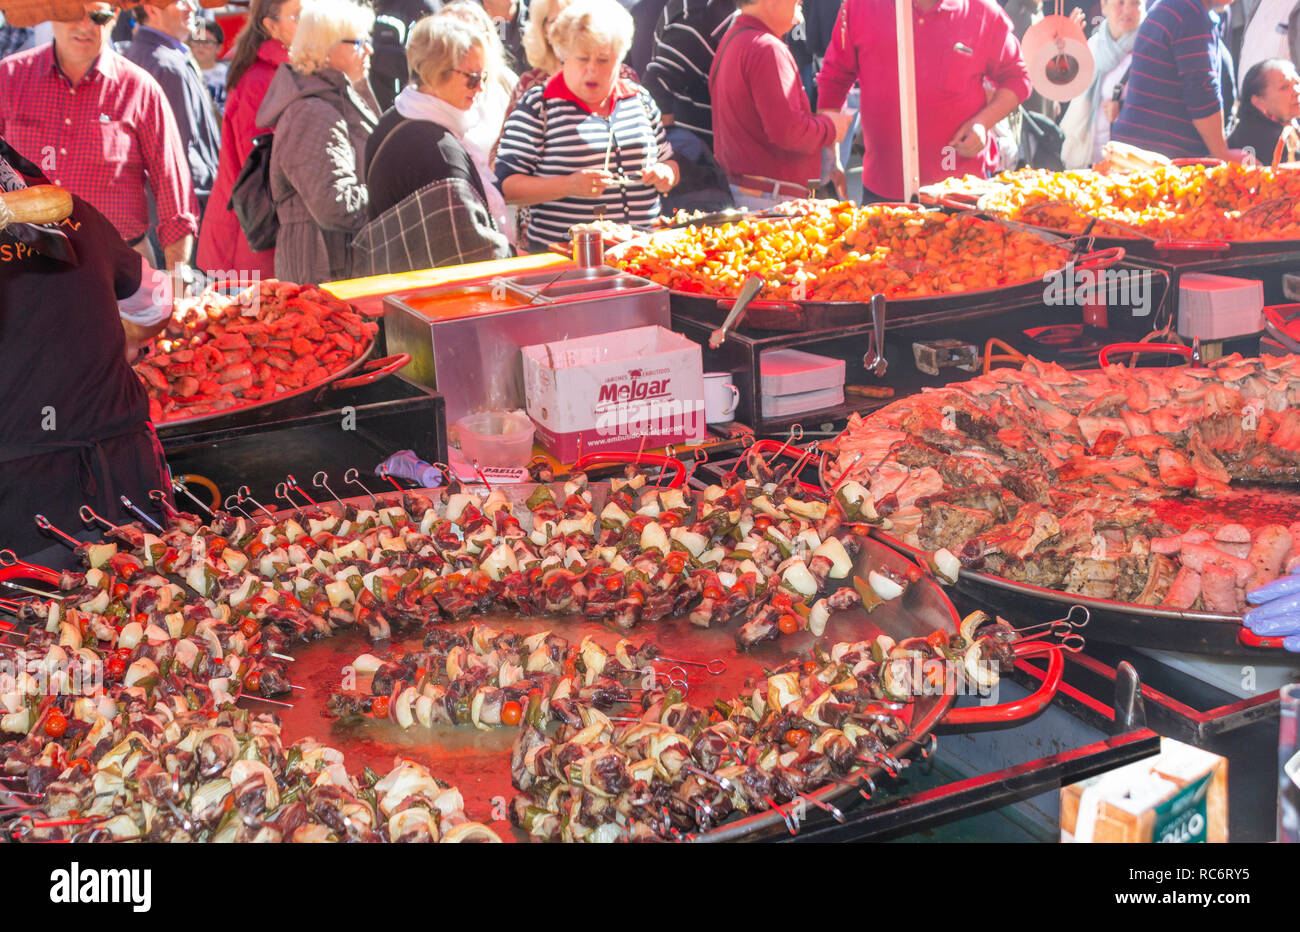 Campillos, Malaga, Spain. Ham and pork products fair. Large pans of sausages, chorizo and other pork related products are served to the many visitors  Stock Photo